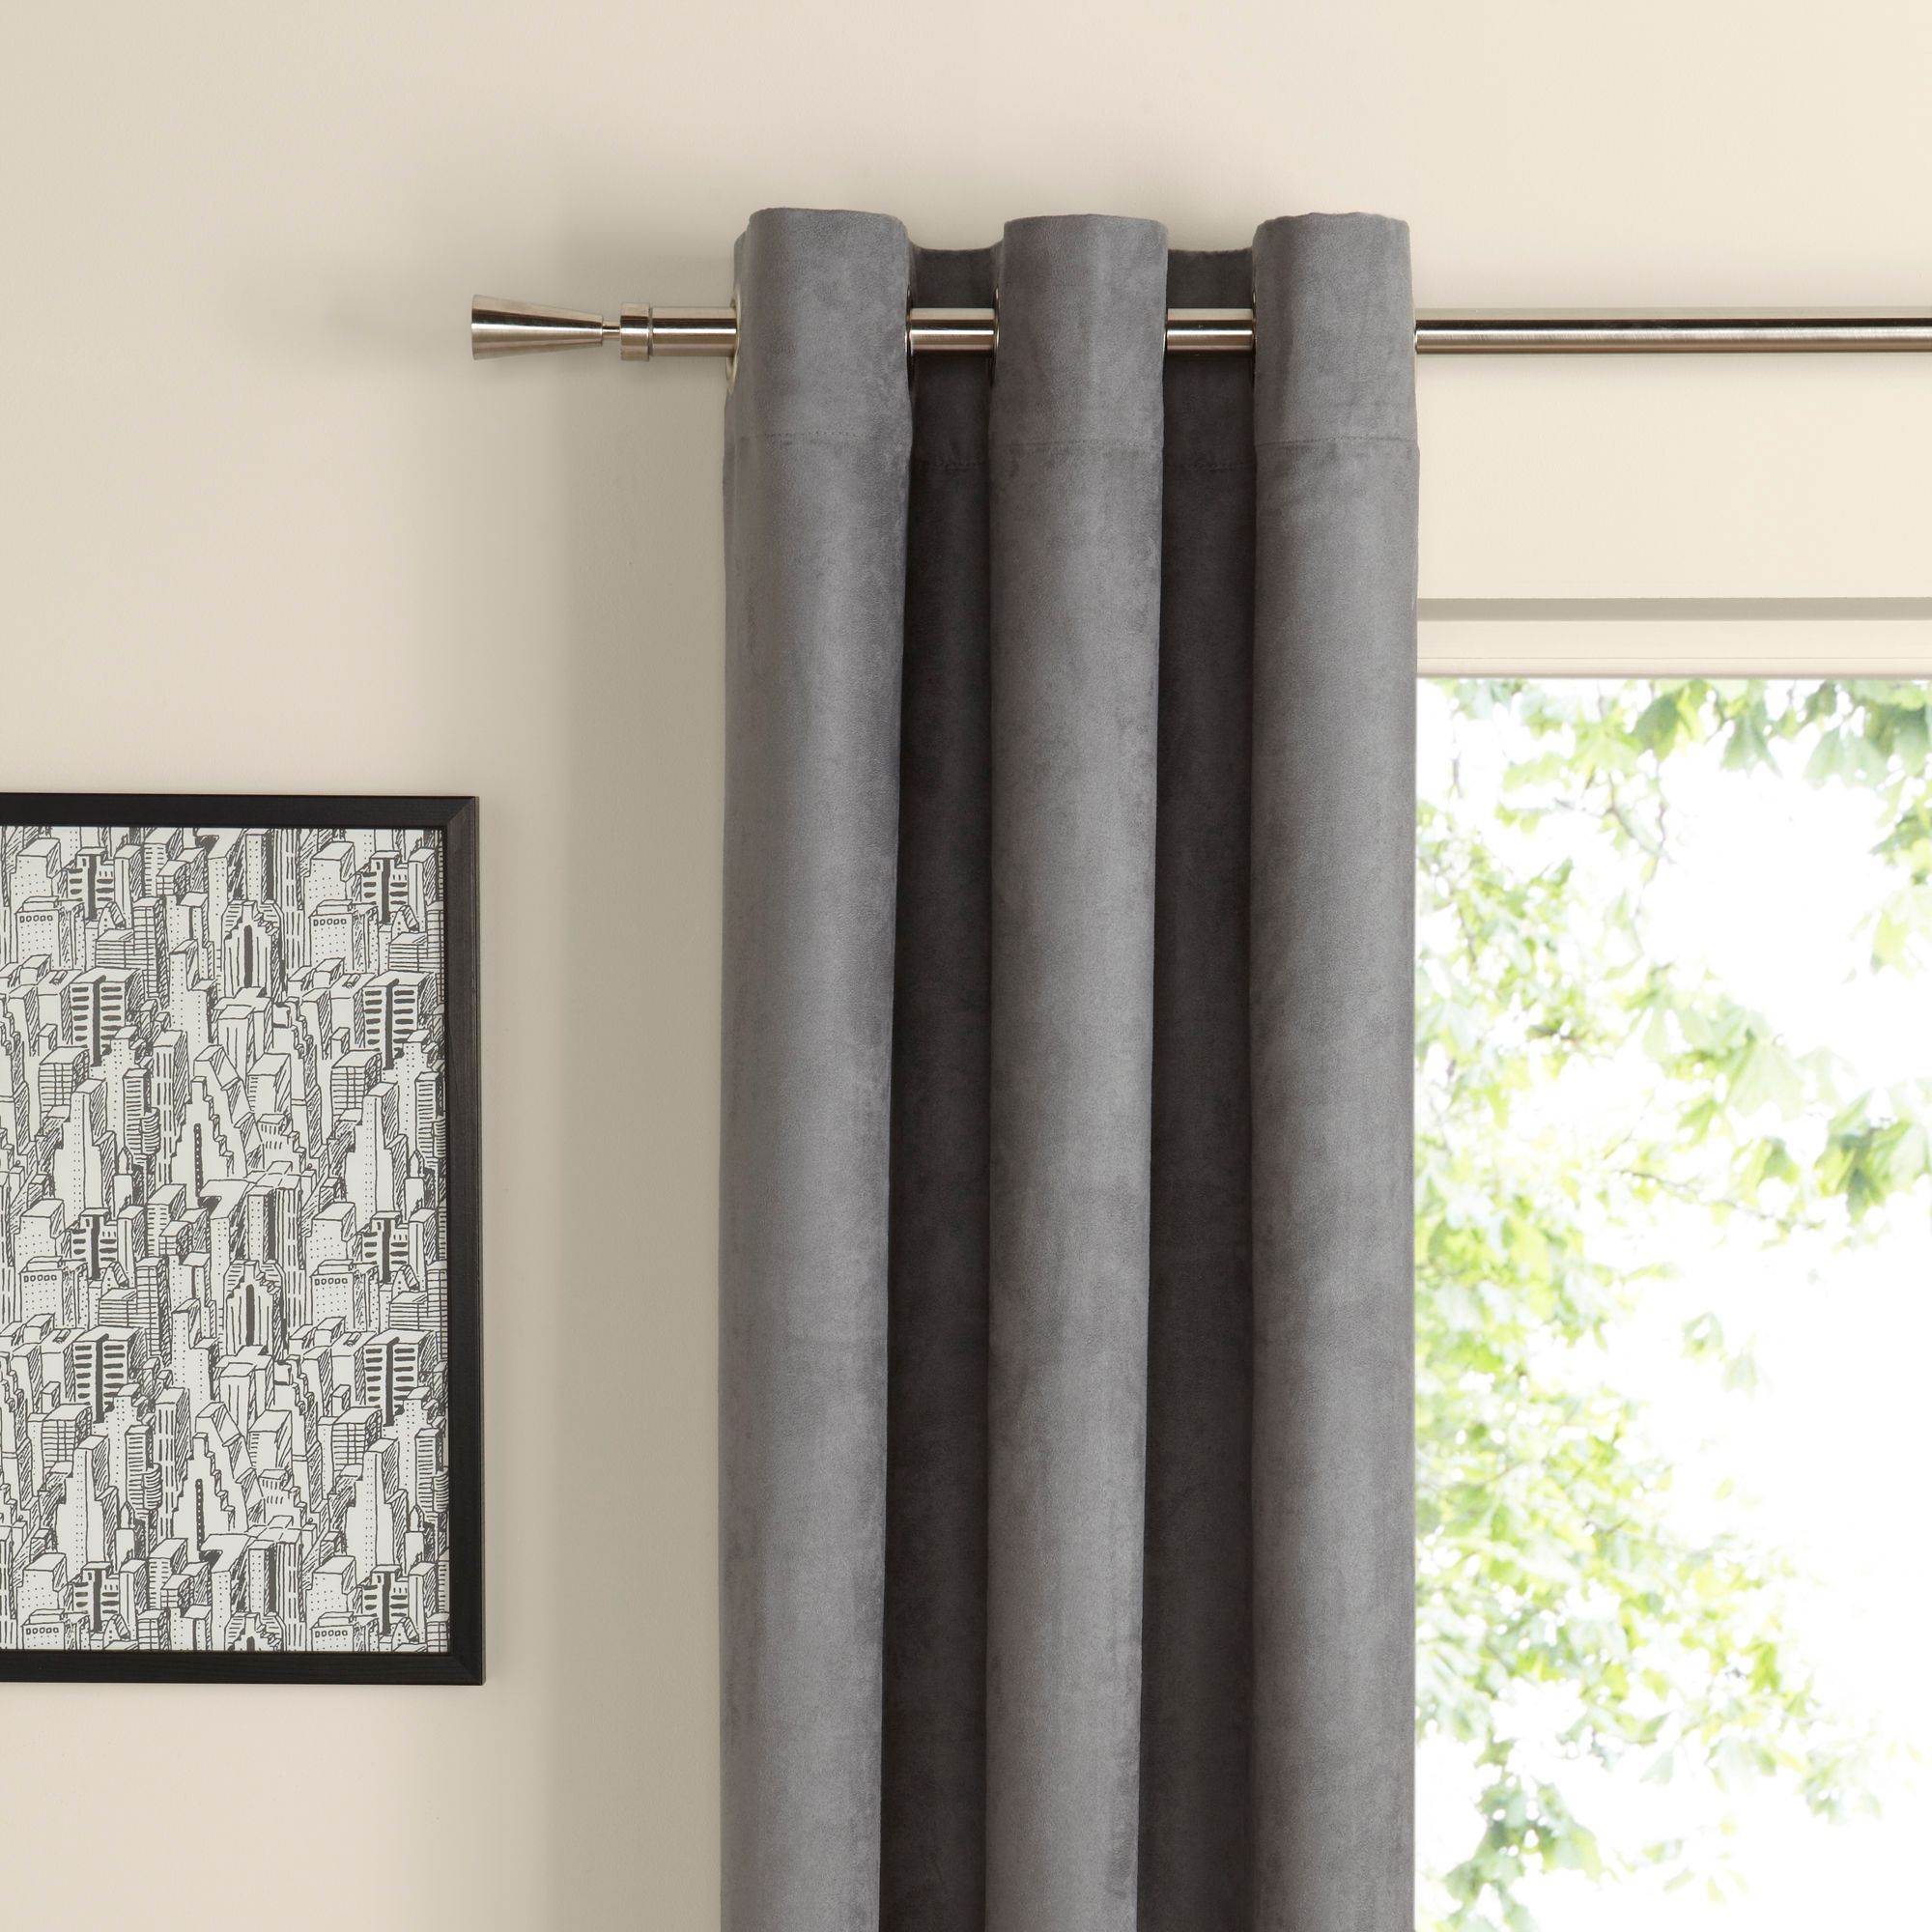 Zen Lime Plain Eyelet Curtains cm cm - B&Q for all your home and garden  supplies and advice on all the latest DIY trends